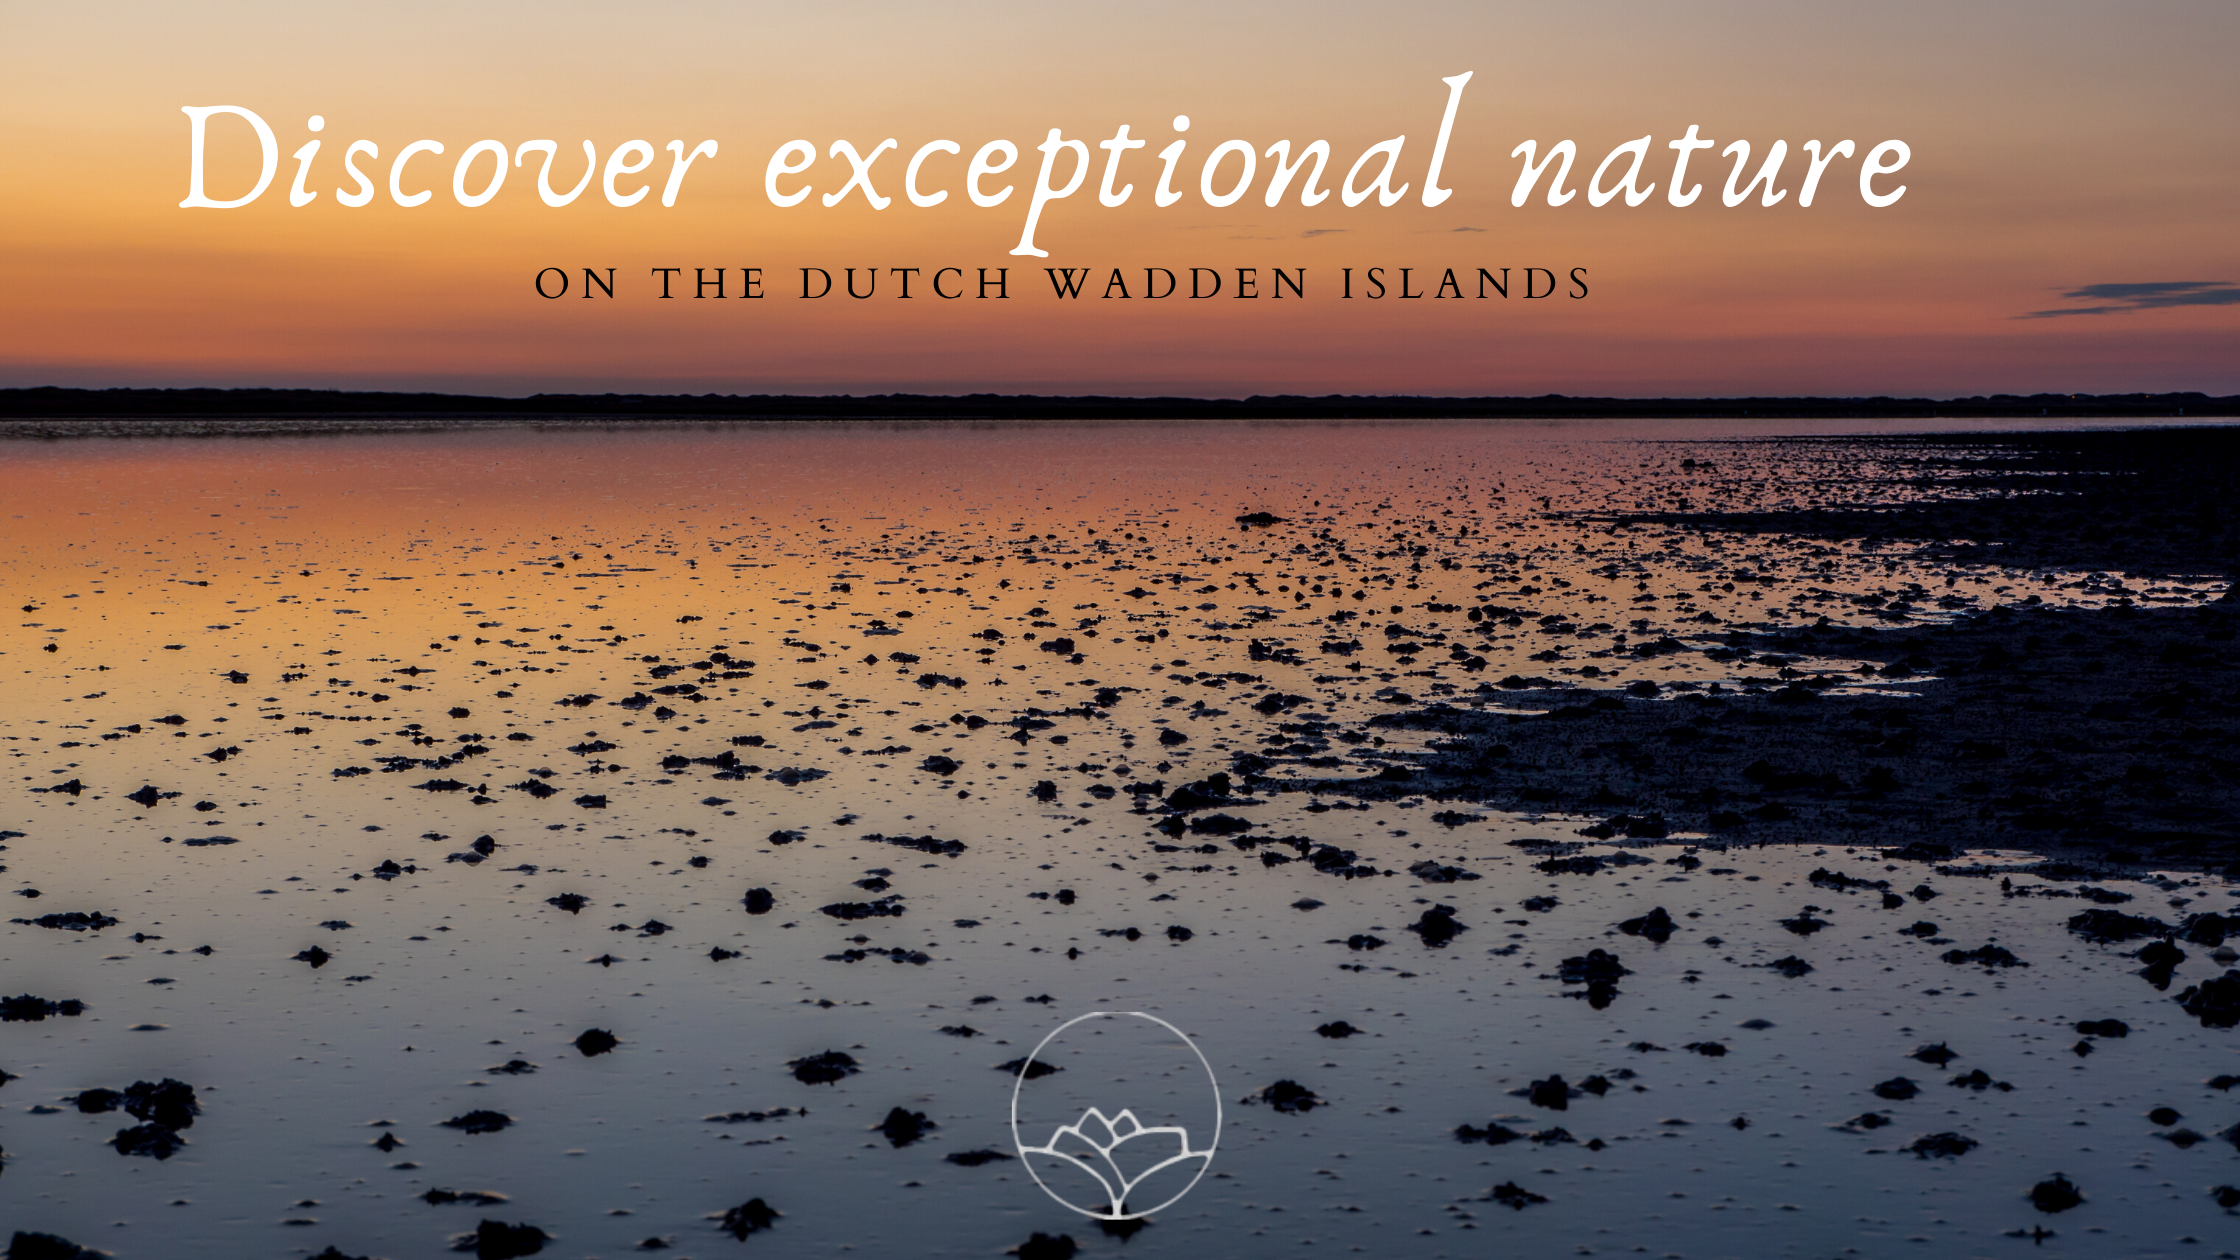 Discover exceptional nature on the Dutch Wadden islands